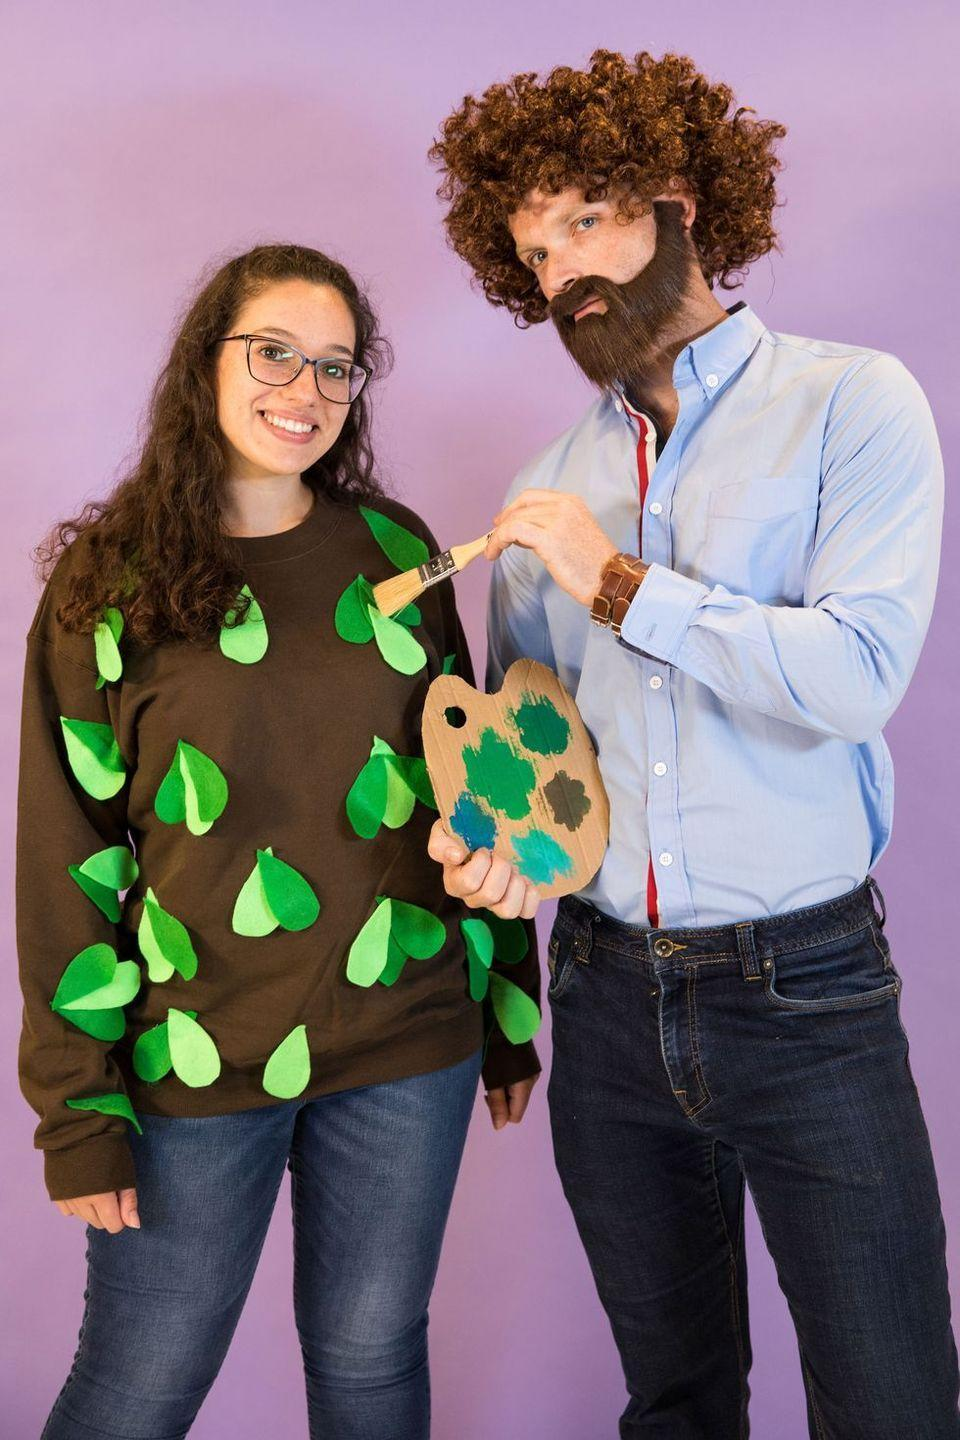 "<p>Because every Halloween party could use some ""happy little trees"" from Bob Ross!</p><p><strong>RELATED: </strong><a href=""https://www.goodhousekeeping.com/holidays/halloween-ideas/a29212306/pop-culture-halloween-costumes/"" rel=""nofollow noopener"" target=""_blank"" data-ylk=""slk:All of the Best Pop Culture Halloween Costumes to Wear in 2020"" class=""link rapid-noclick-resp"">All of the Best Pop Culture Halloween Costumes to Wear in 2020</a> </p>"